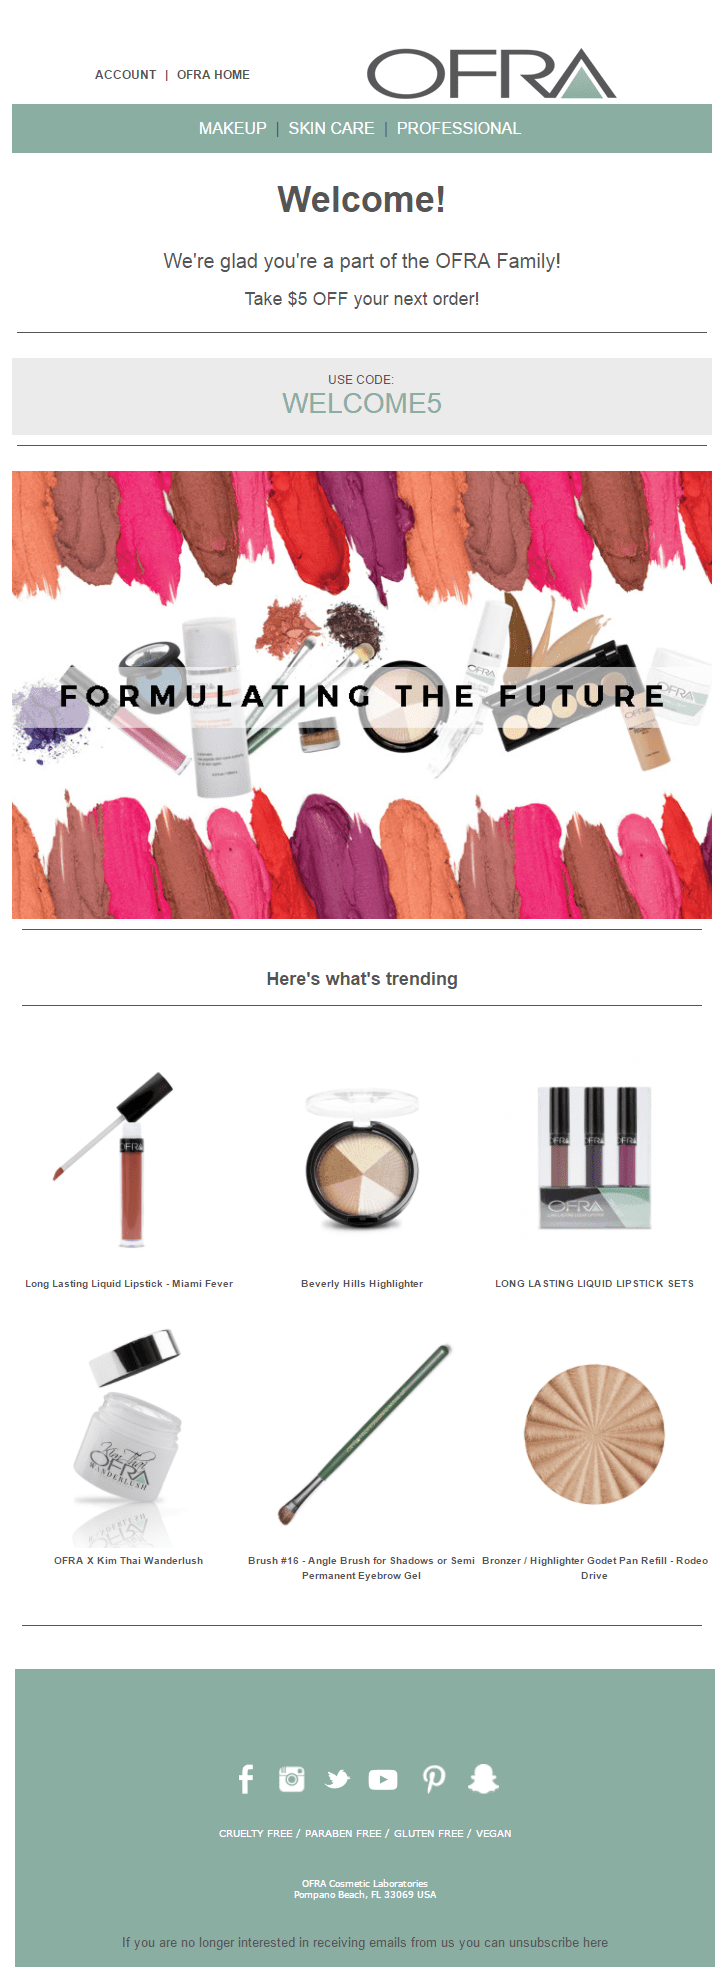 OFRA cosmetics make-up beauty welcome email offer code